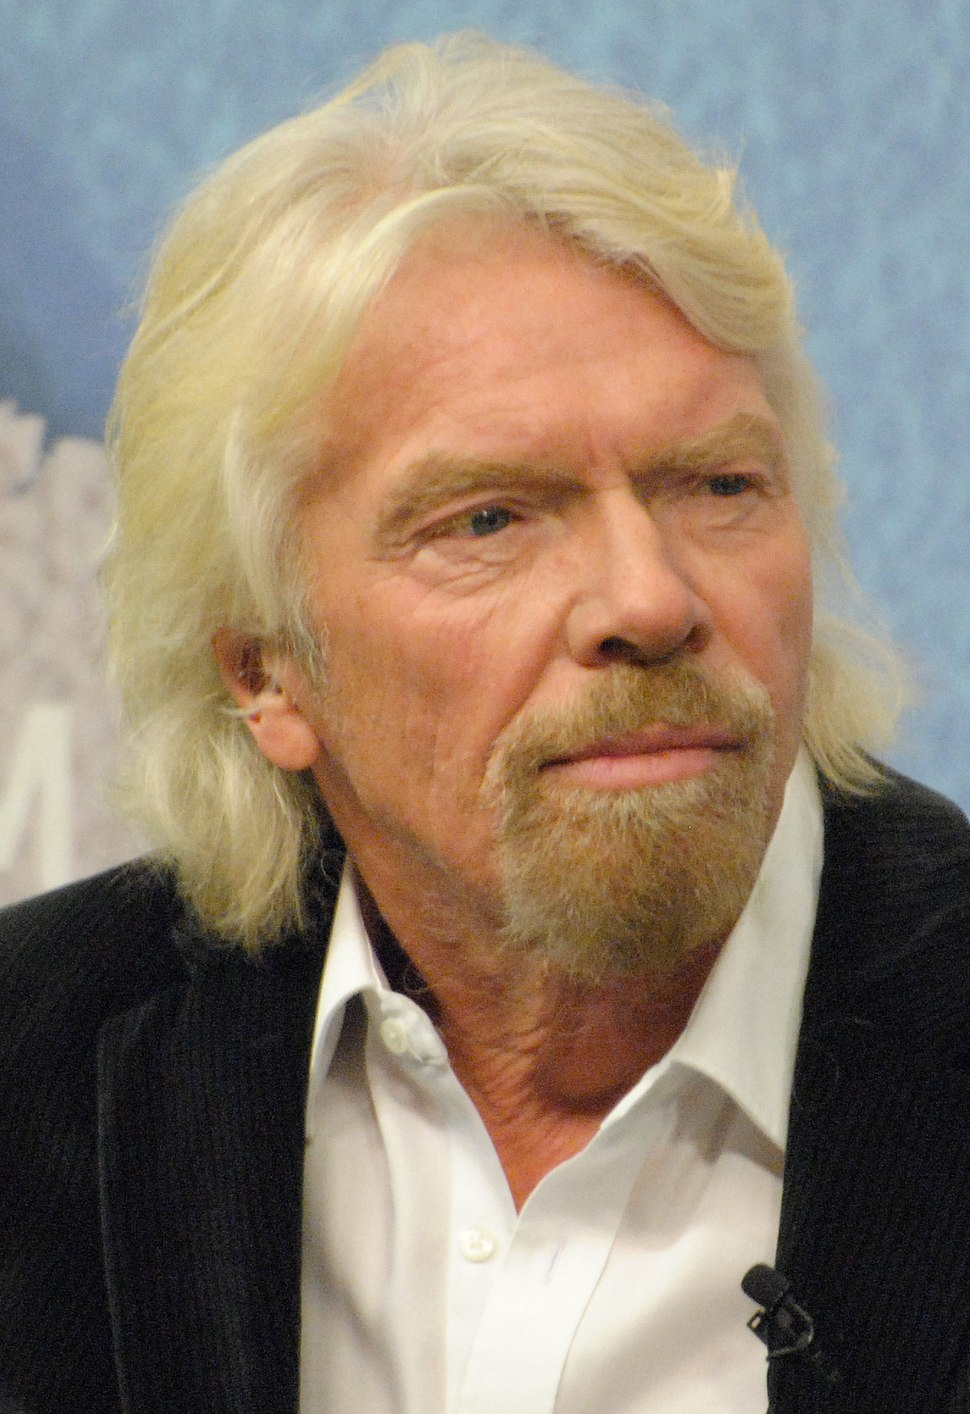 Richard Branson March 2015 (cropped)